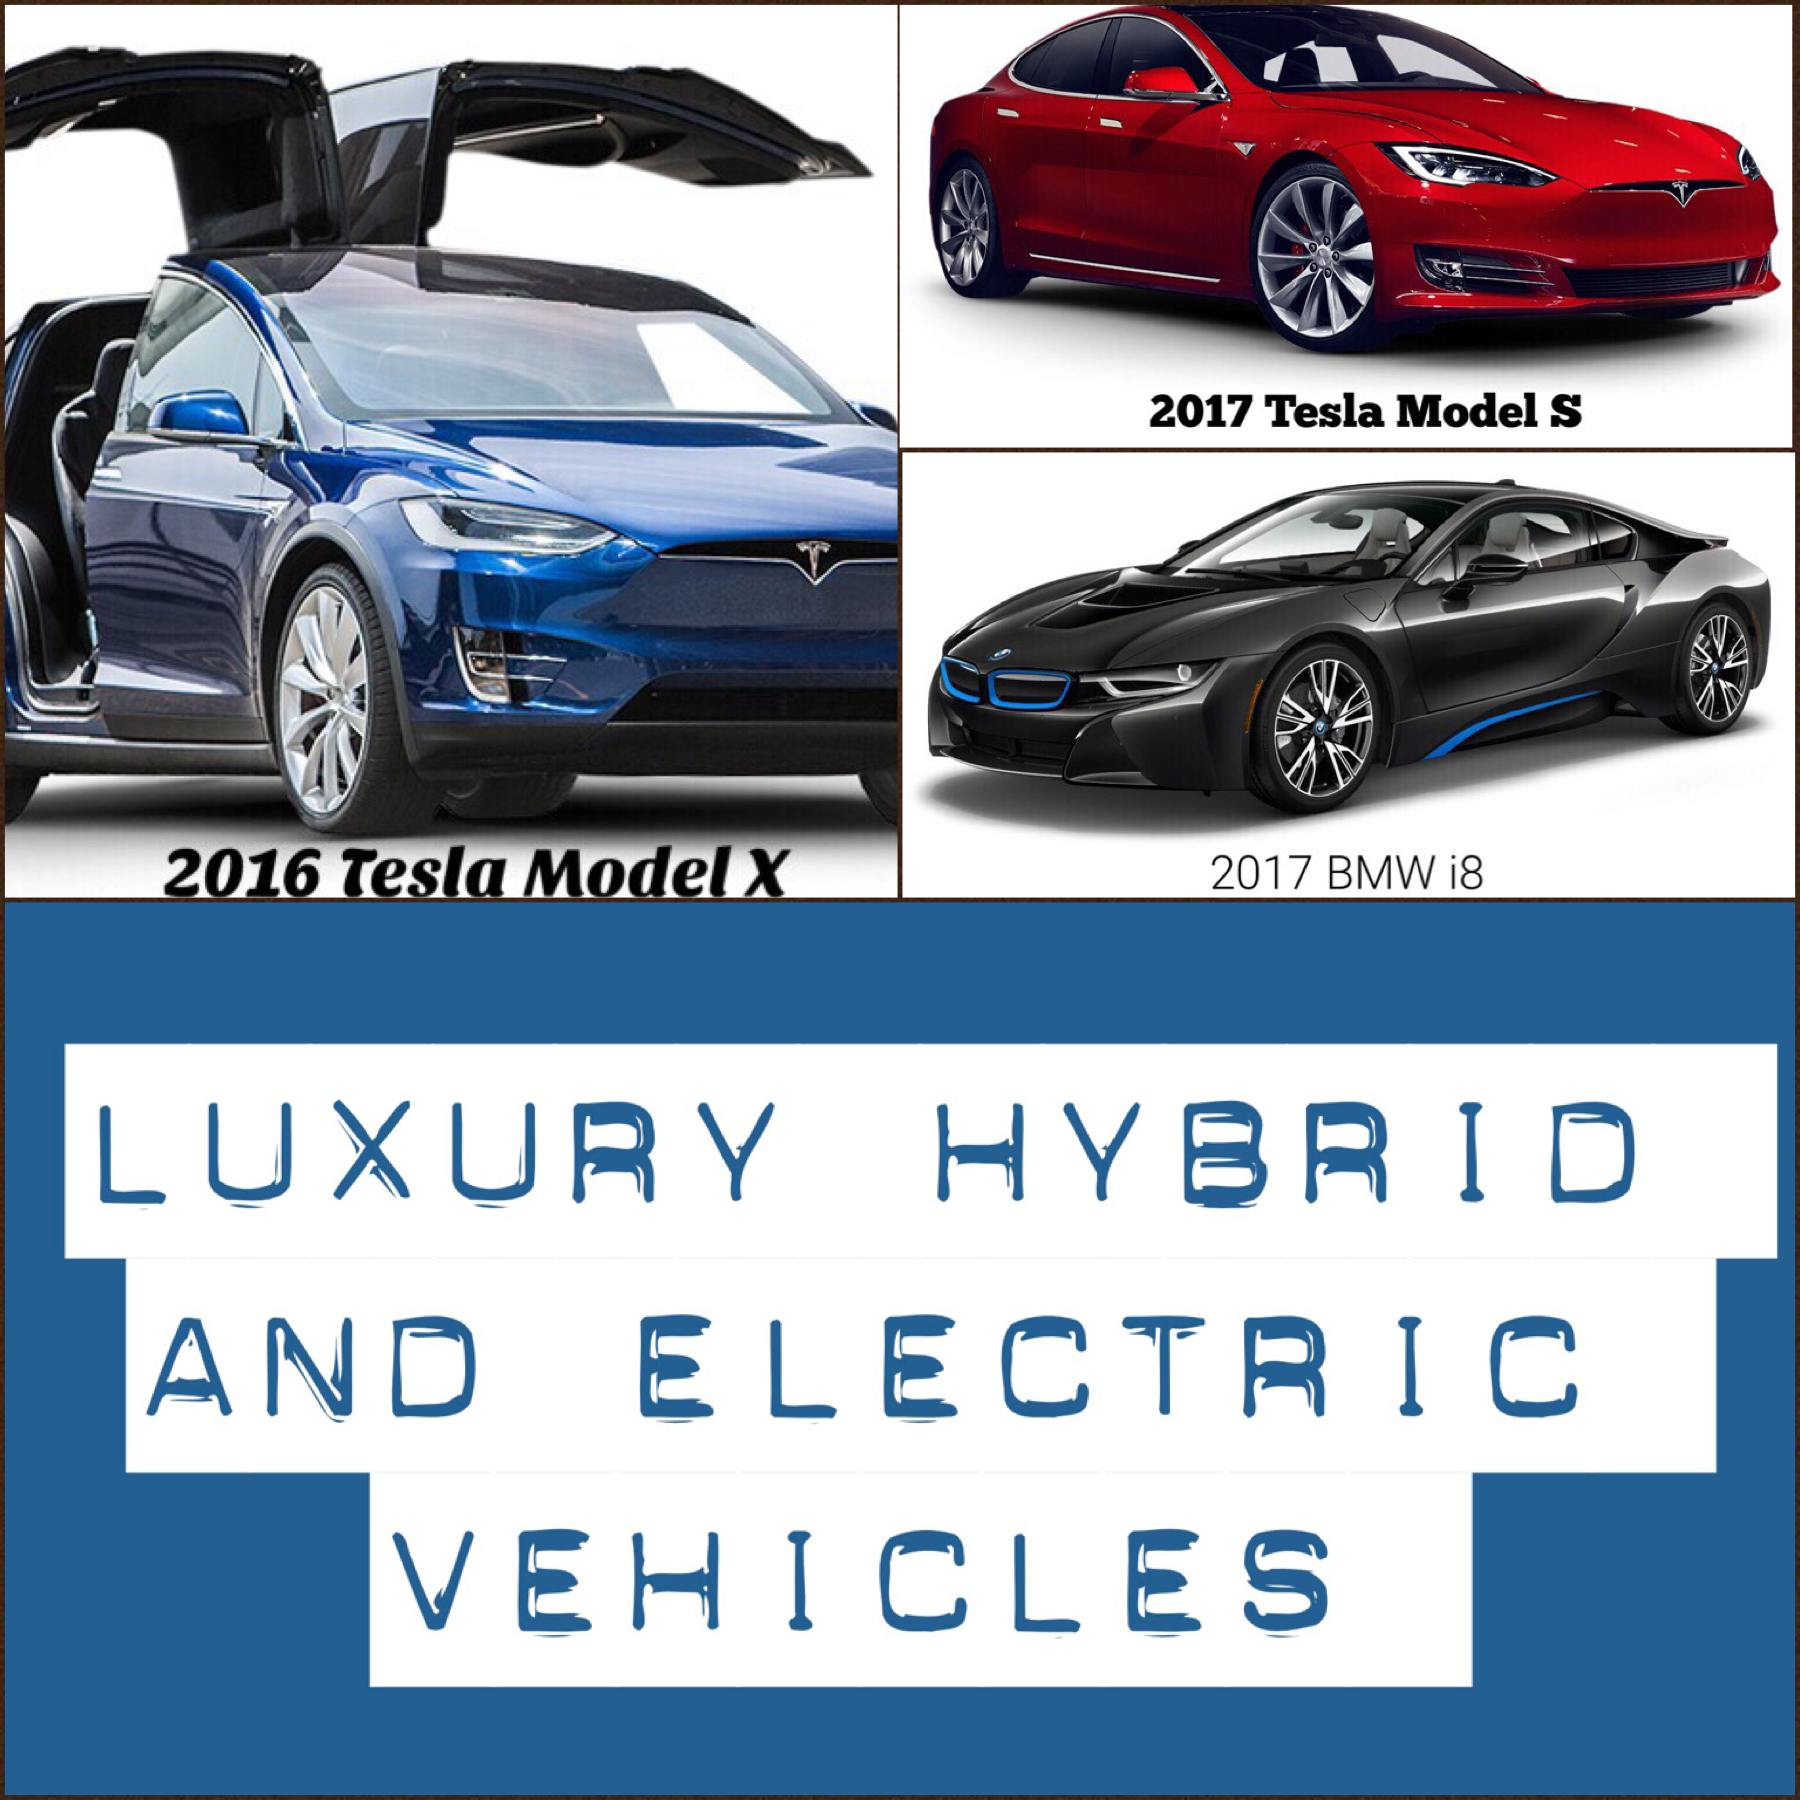 Best Luxury Hybrid And Electric Vehicles Of 2016 Electric Cars Tesla Model S Vehicles